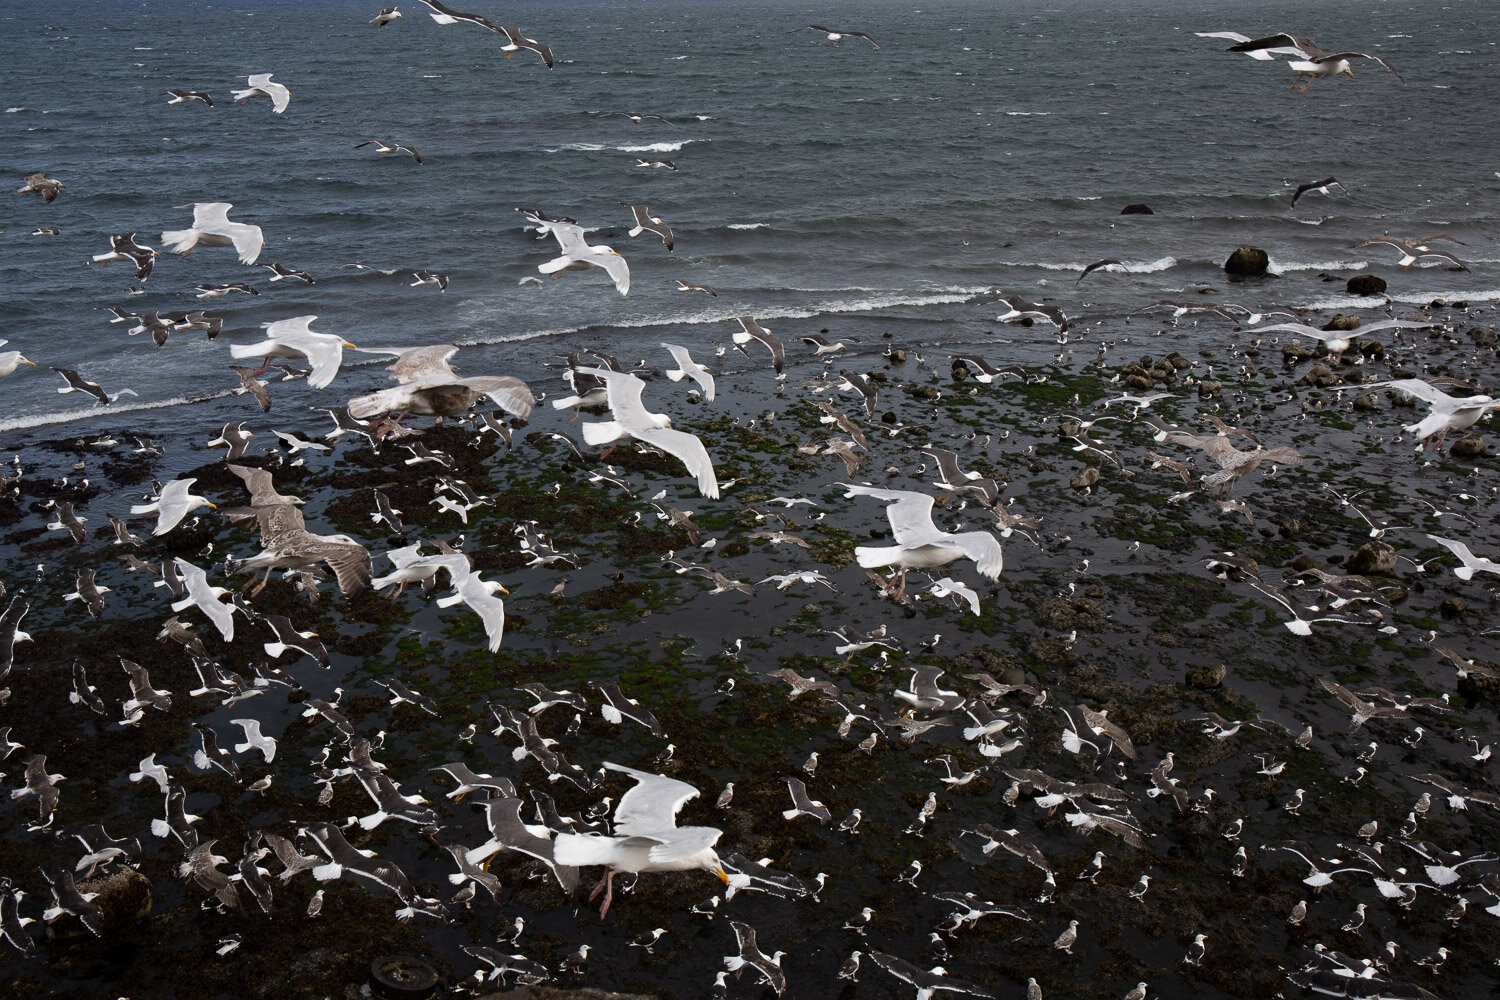 frenzy of gulls by the sea